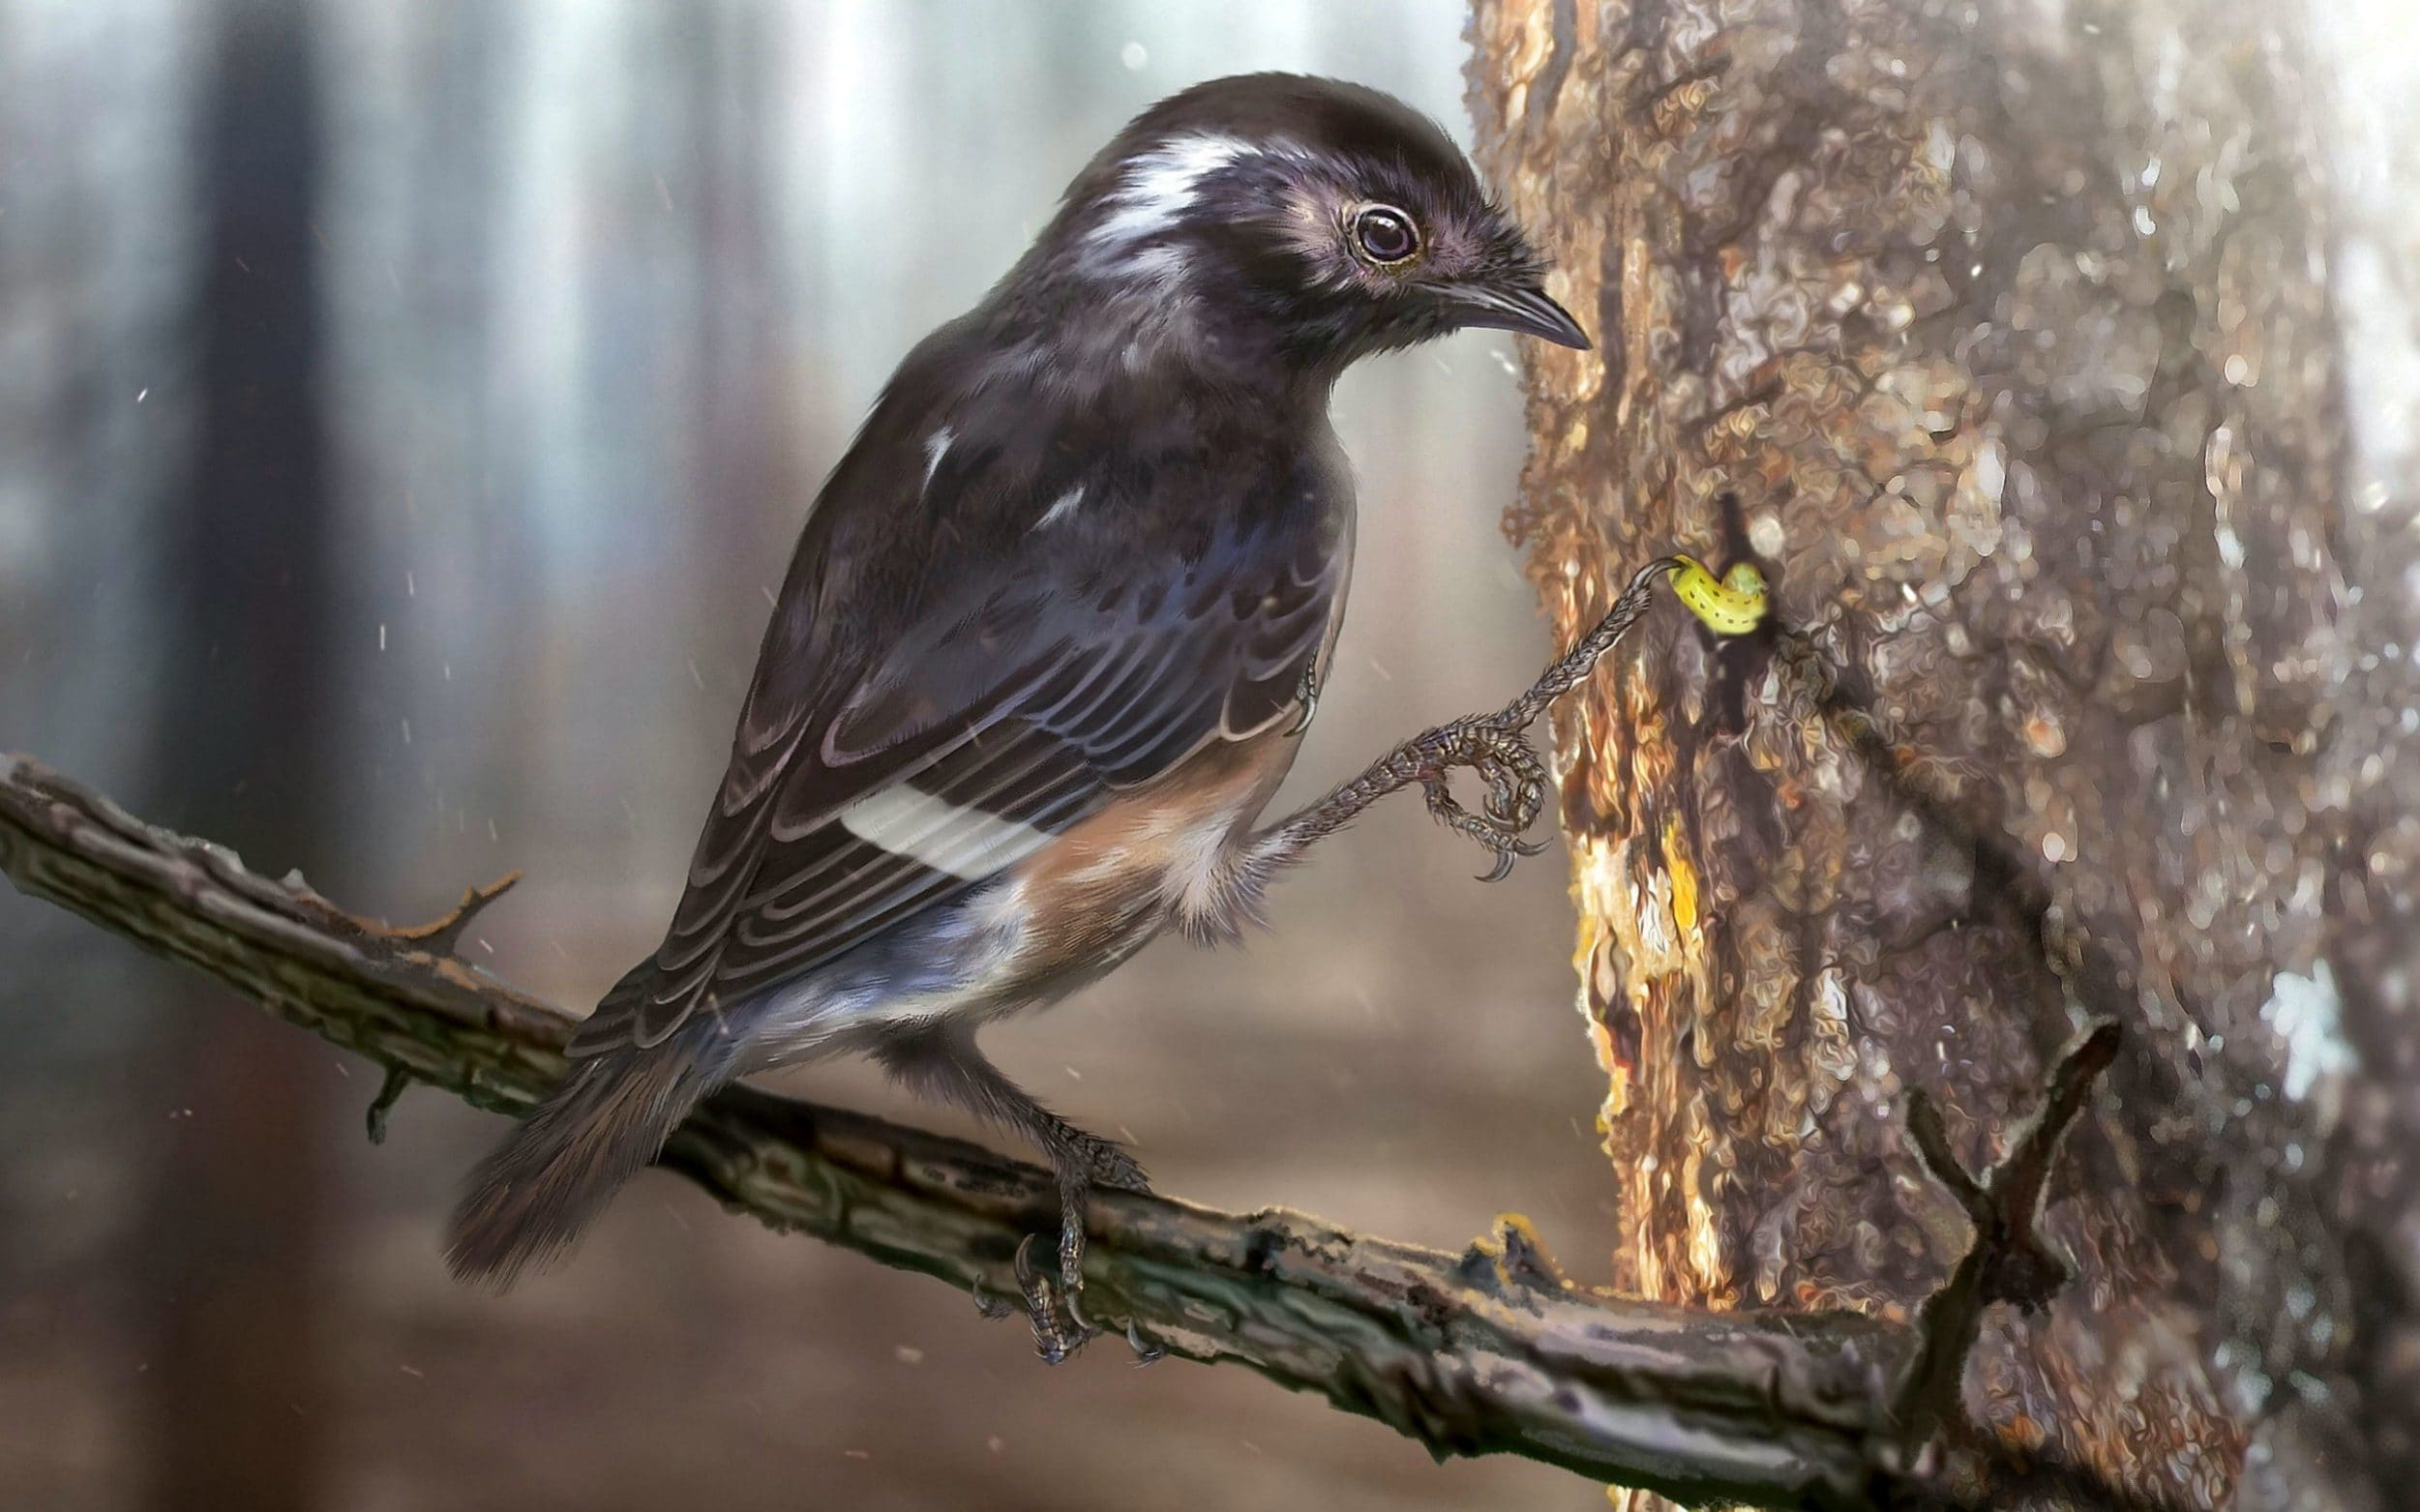 Fossil of 99 million-year-old bird with giant toe found in Burma